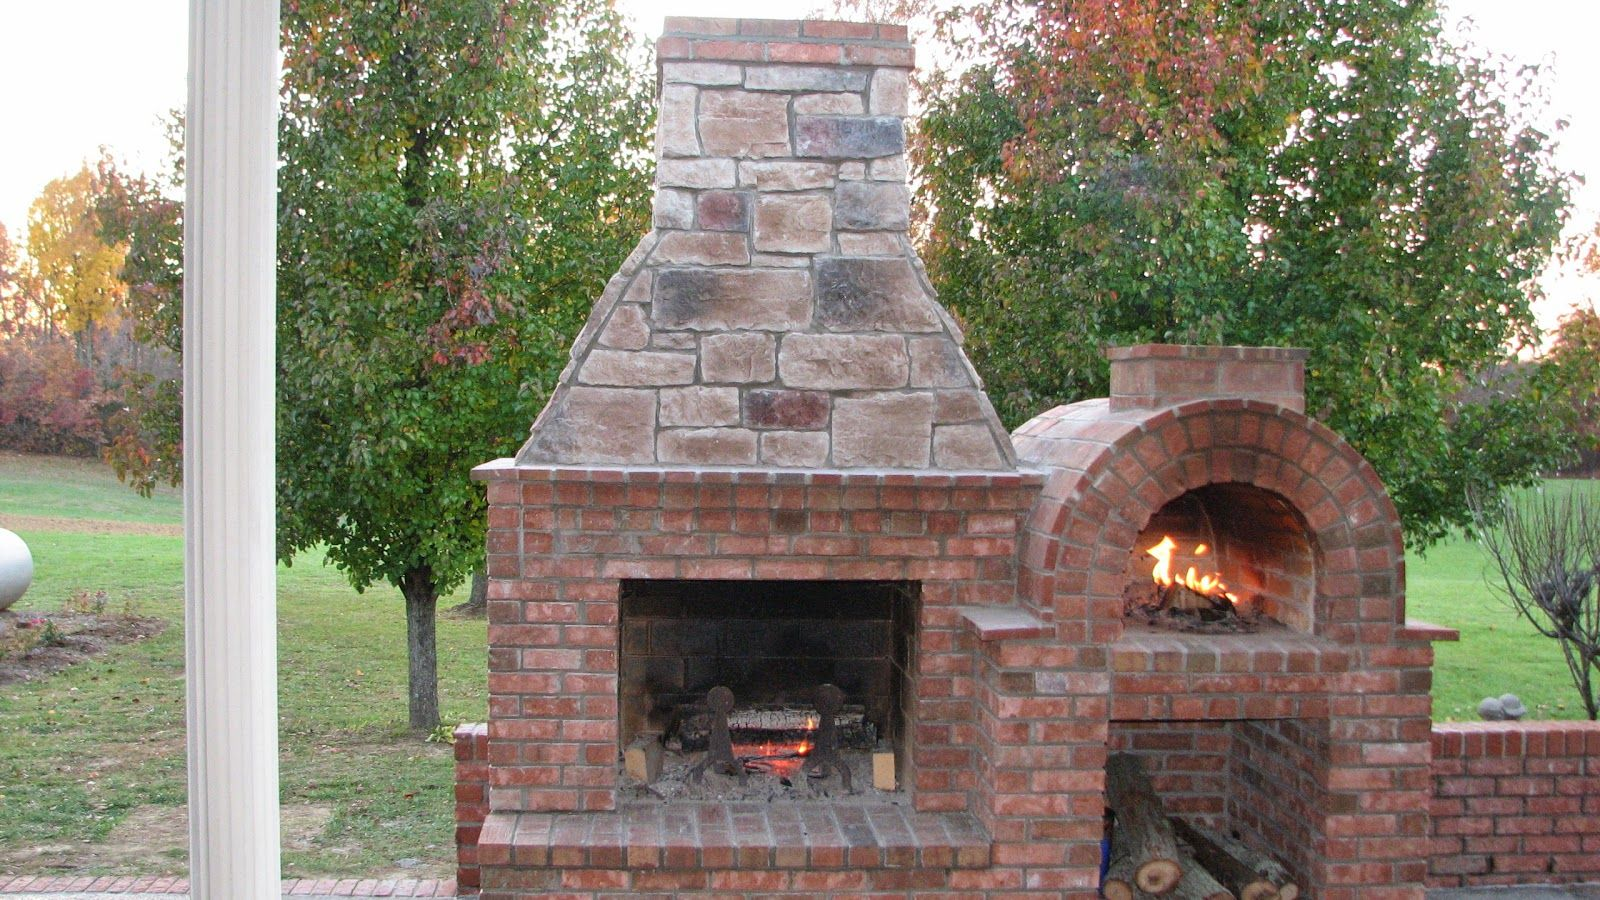 Outdoor Brick Fireplace With Oven Fireplace Design Ideas Diy